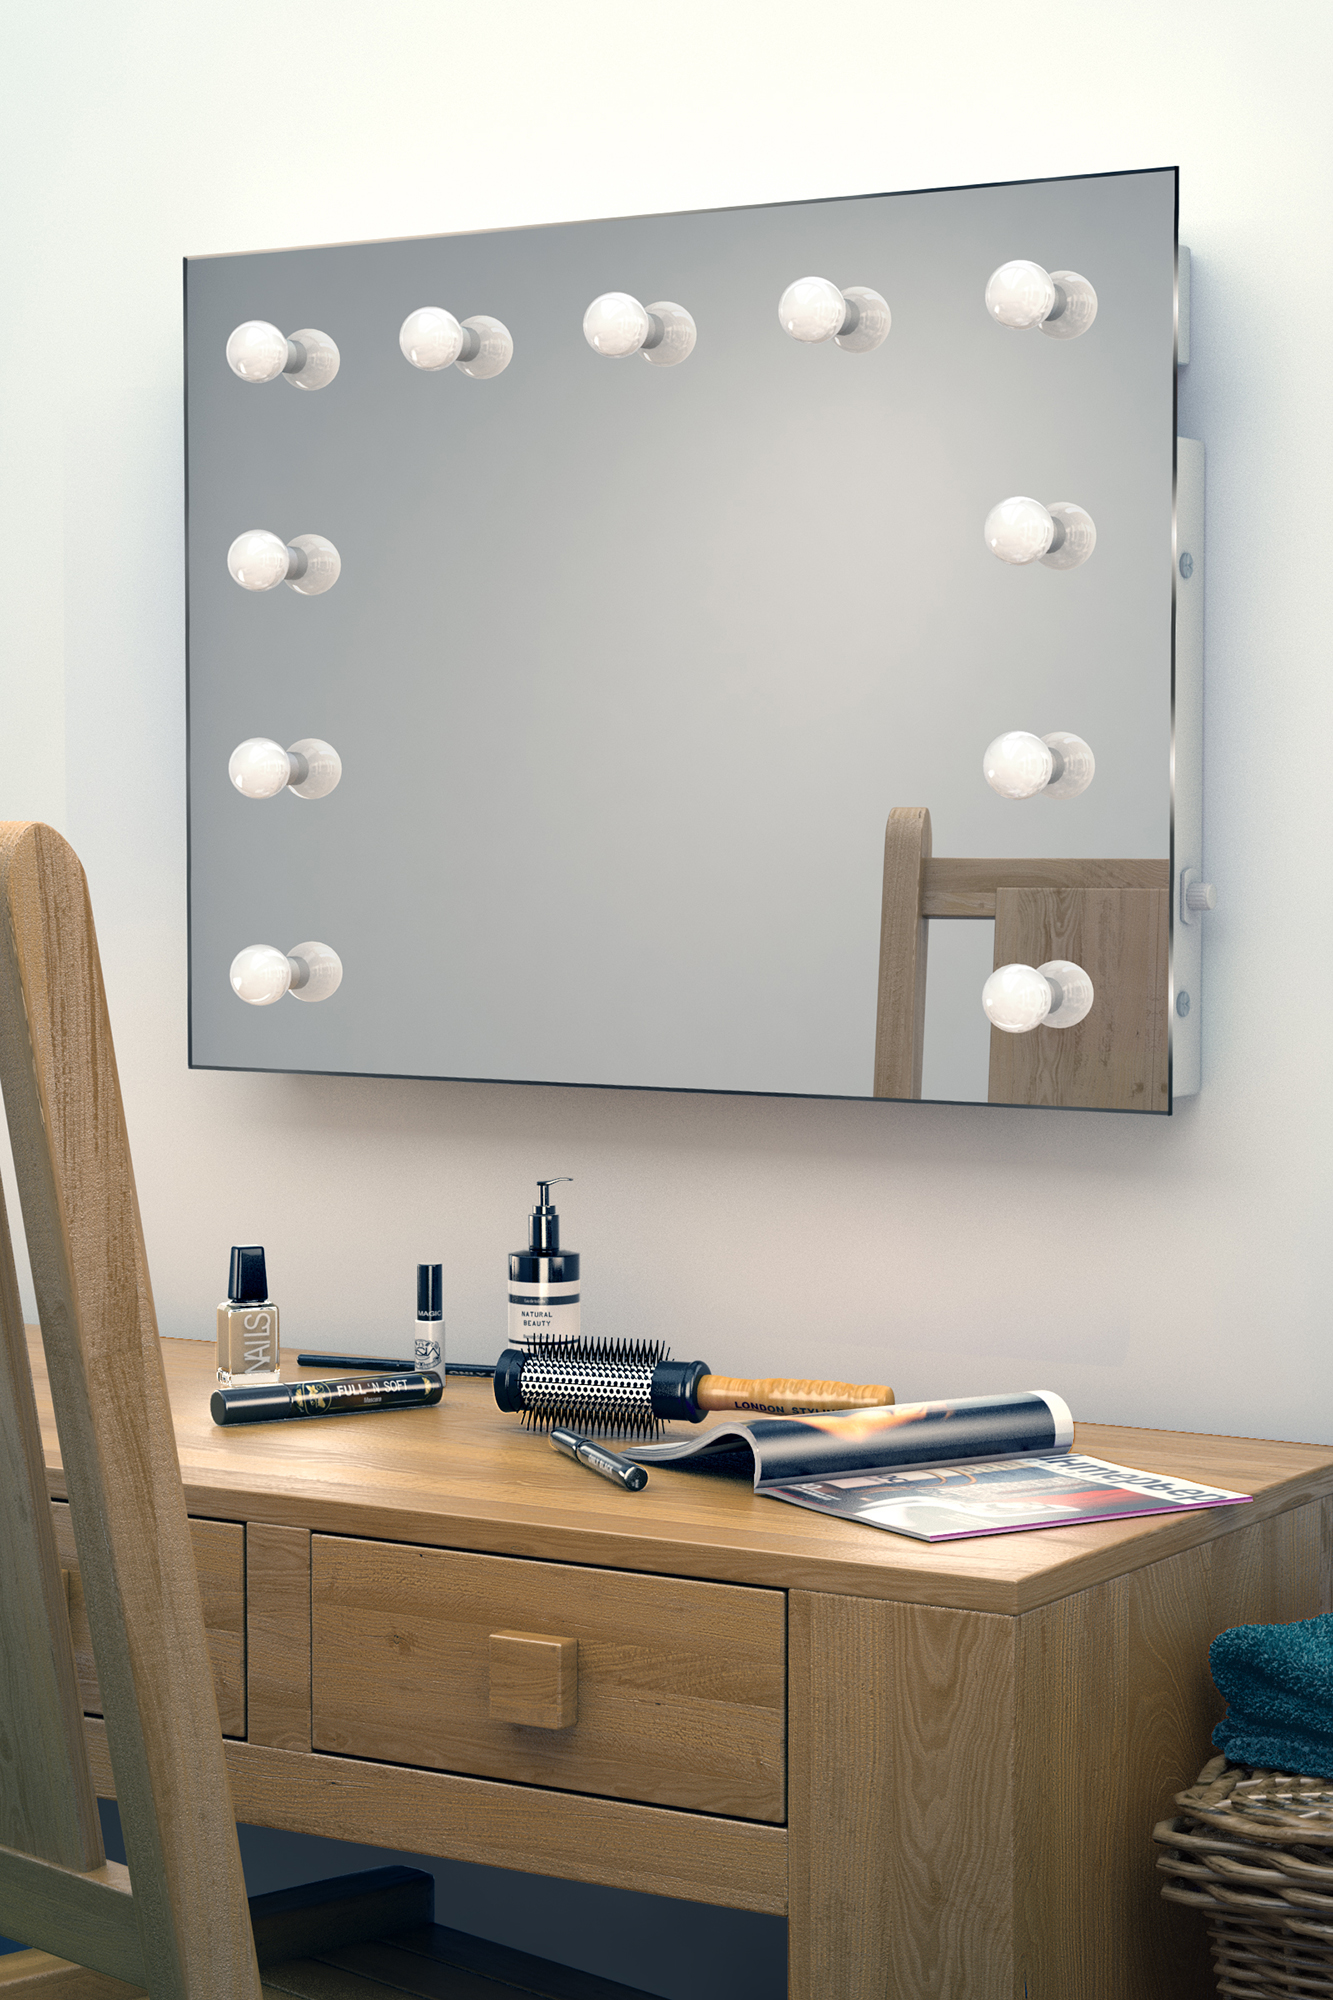 miroir de maquillage hollywood vestiaire avec lampes led graduables k95led ebay. Black Bedroom Furniture Sets. Home Design Ideas